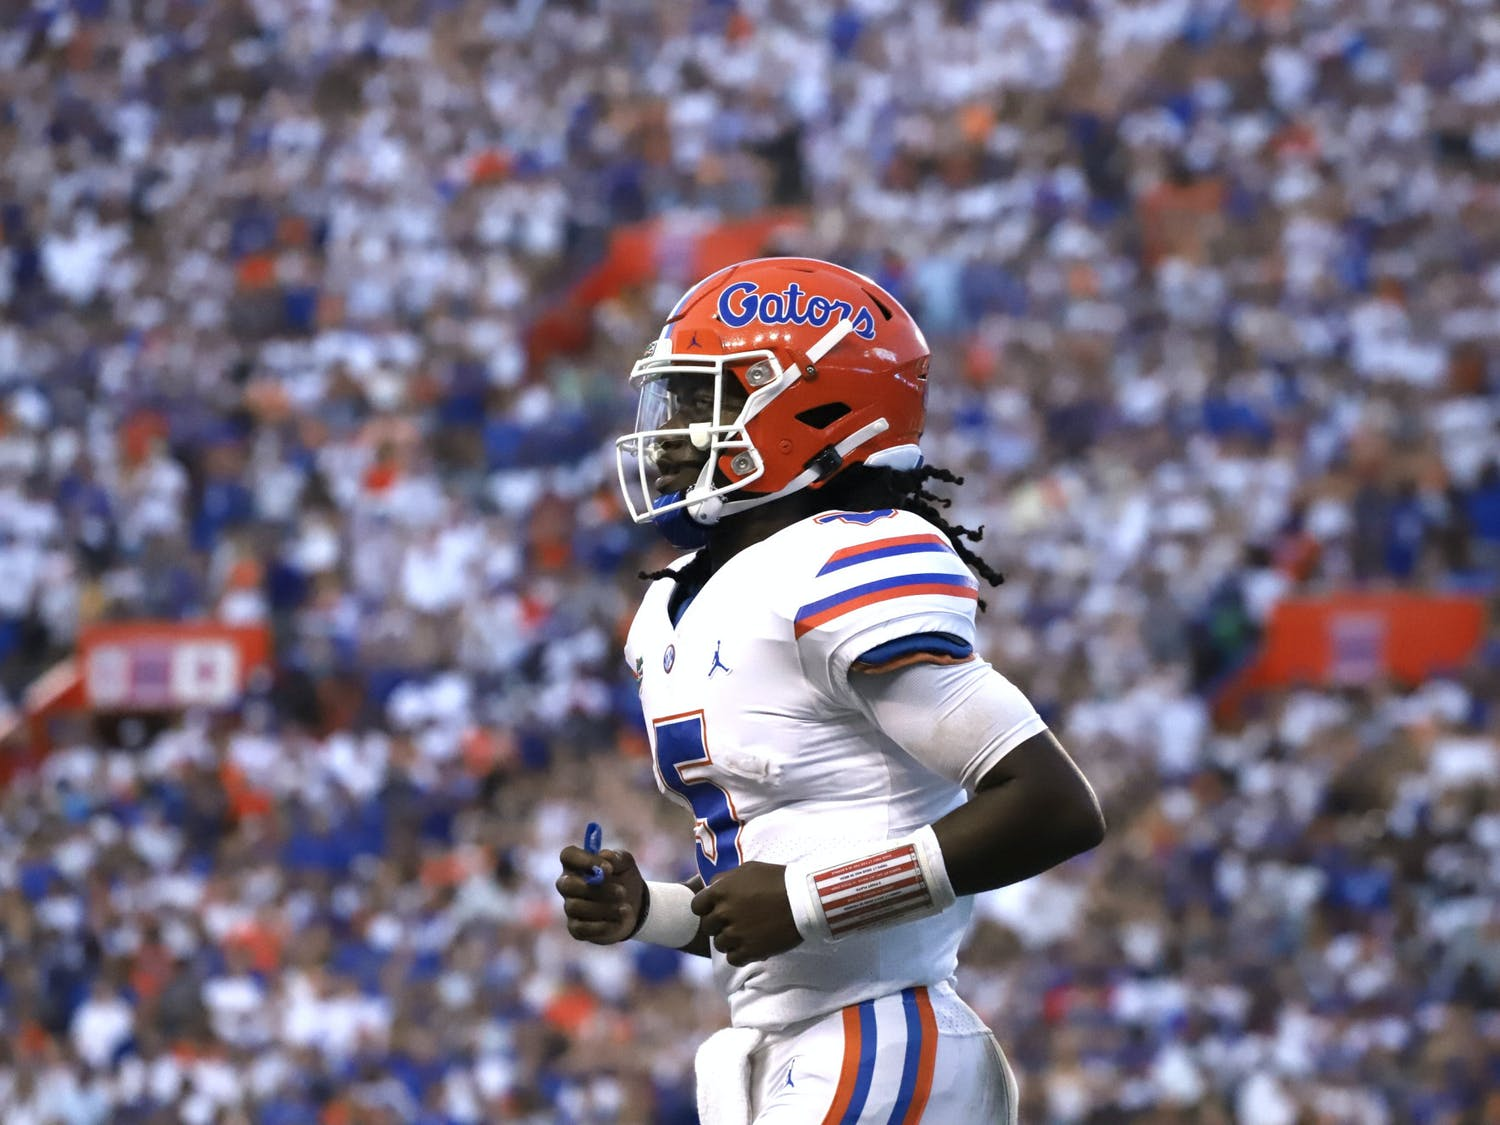 Florida's Emory Jones on the field during the Gators' season-opening 35-14 victory over Florida Atlantic on Sept. 4.